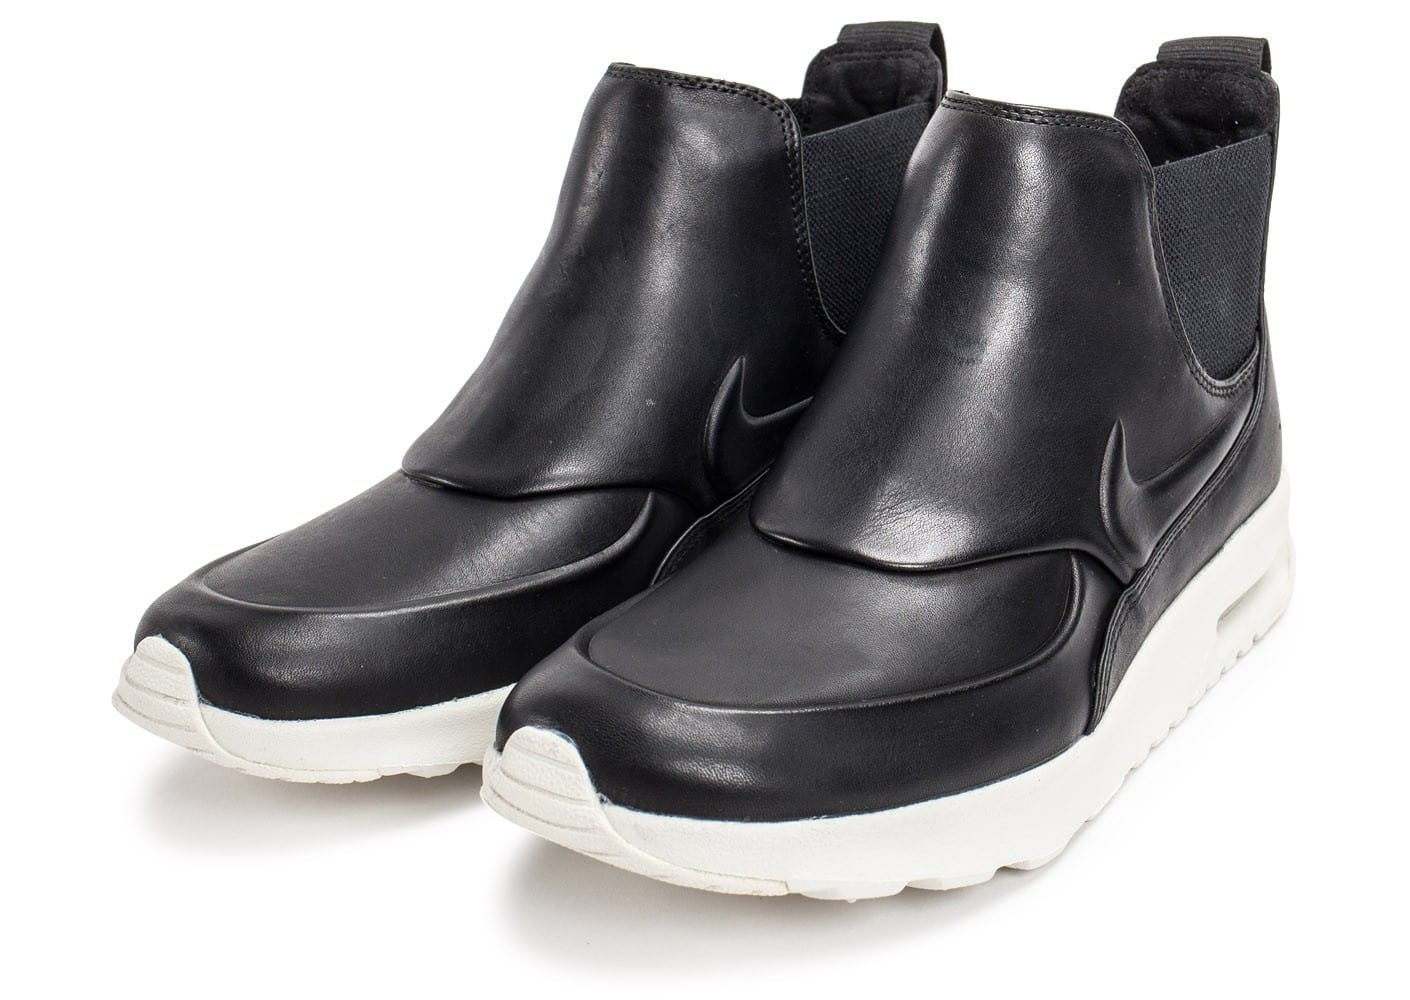 new product 06eb3 b7cc9 Chaussures Nike Air Max Thea Mid noire vue intérieure .